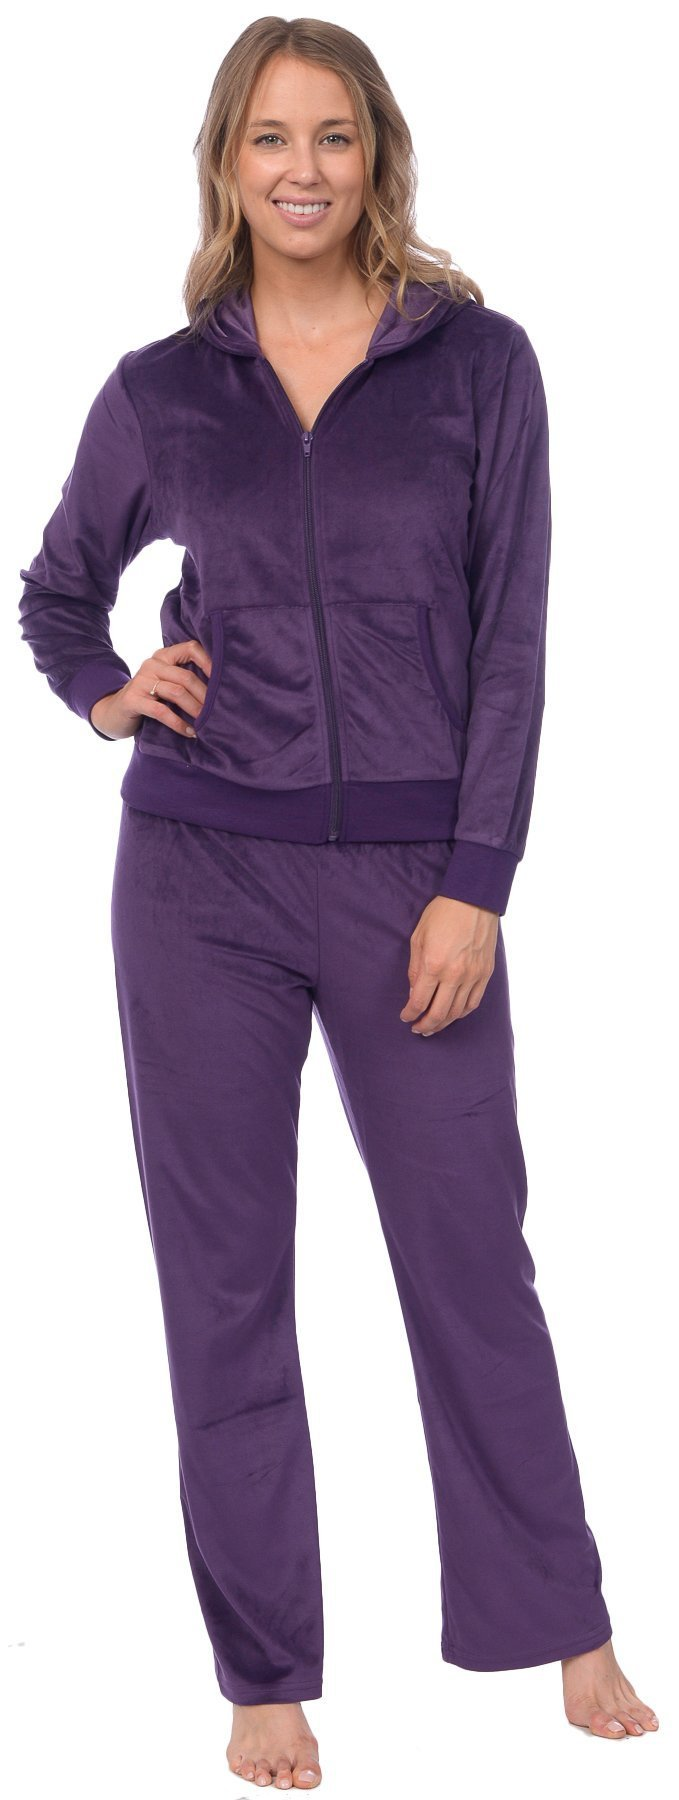 Pink Lady Womens Soft Velour Zip Hoodie and Bottoms Lounge Tracksuit (Crown Jewel, L)